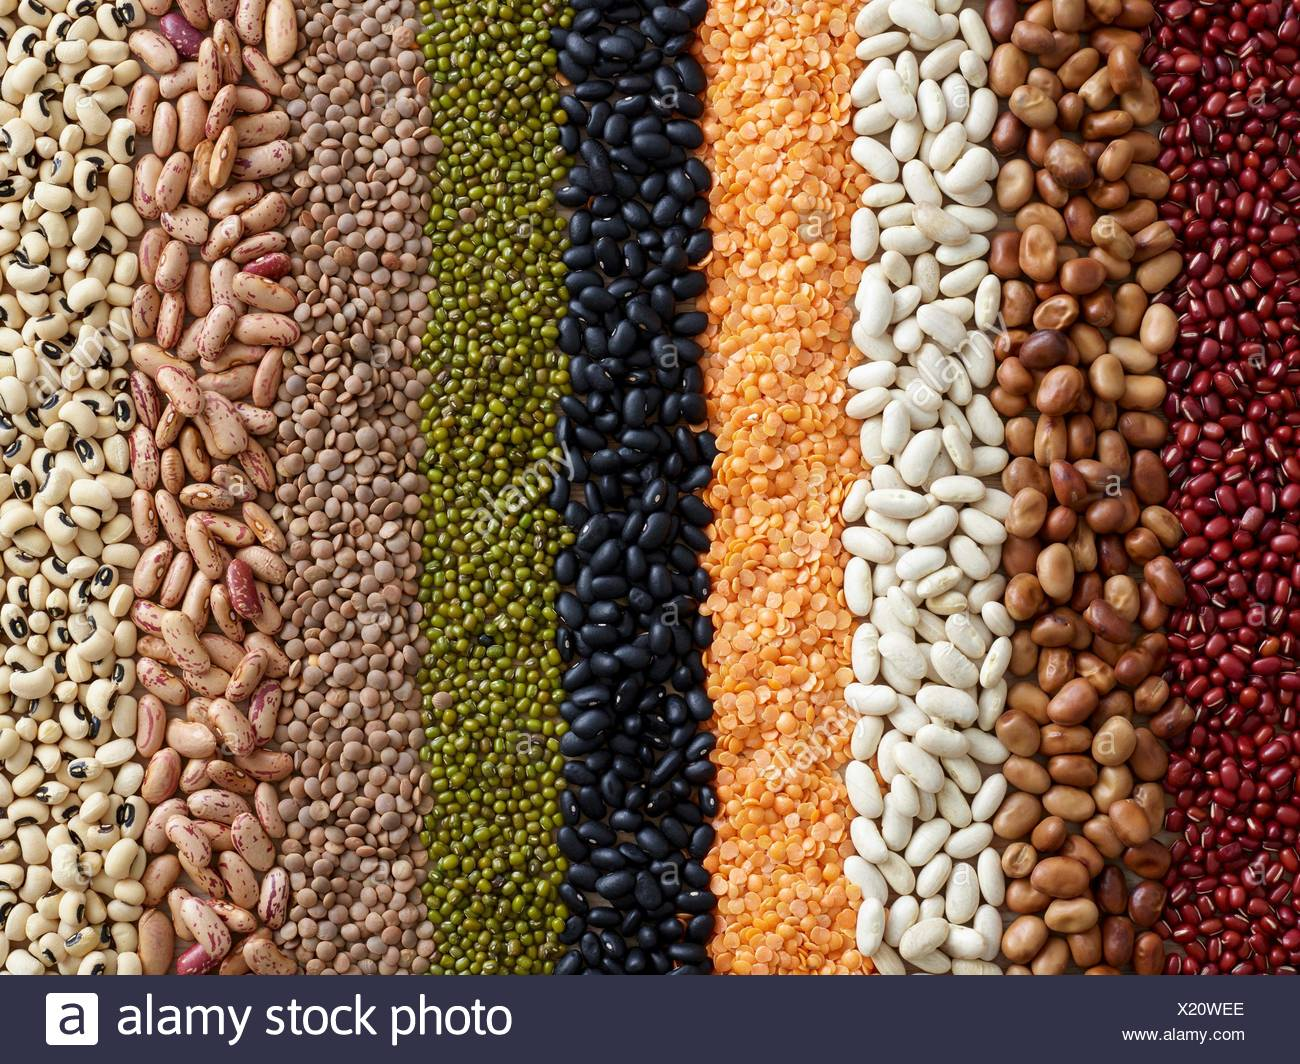 Pulses in rows. - Stock Image